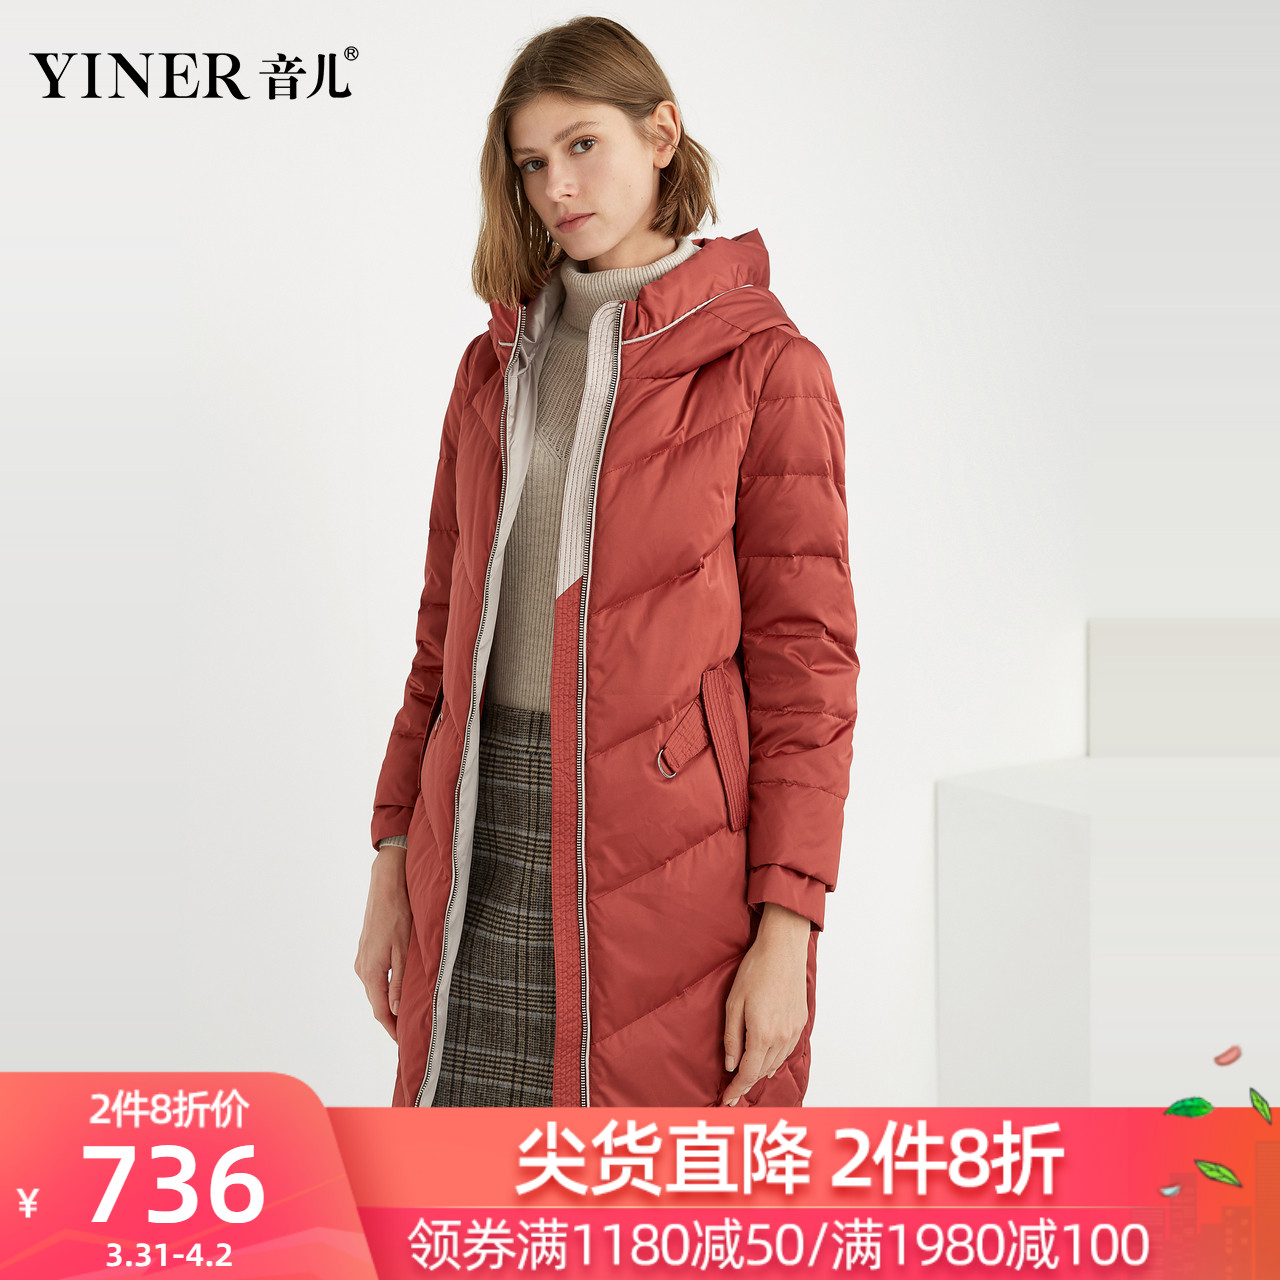 Yiner women's voice 2019 winter new solid color medium long high neck hooded thickened down jacket